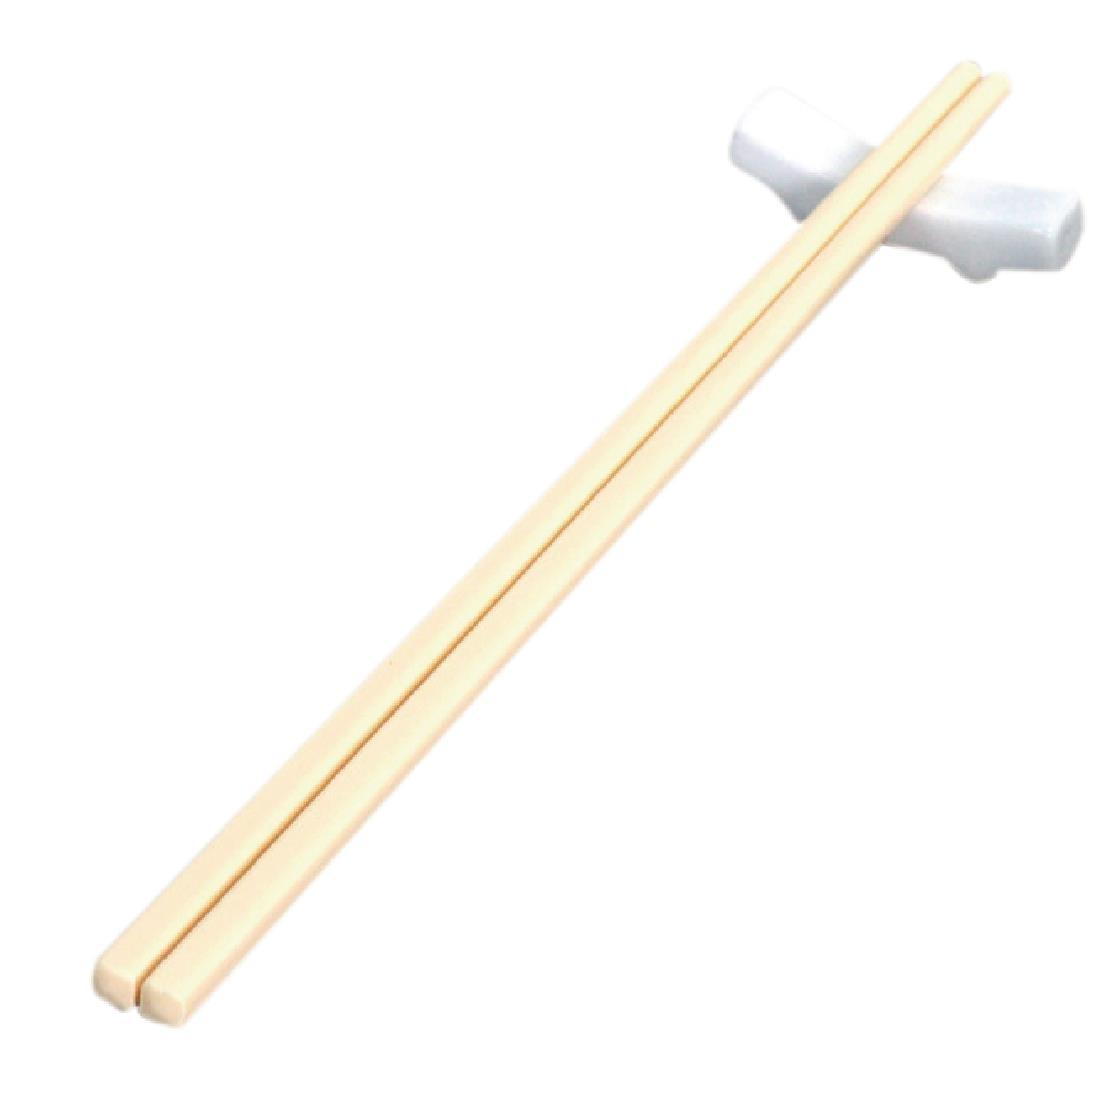 Olympia Chopsticks Pack of 10